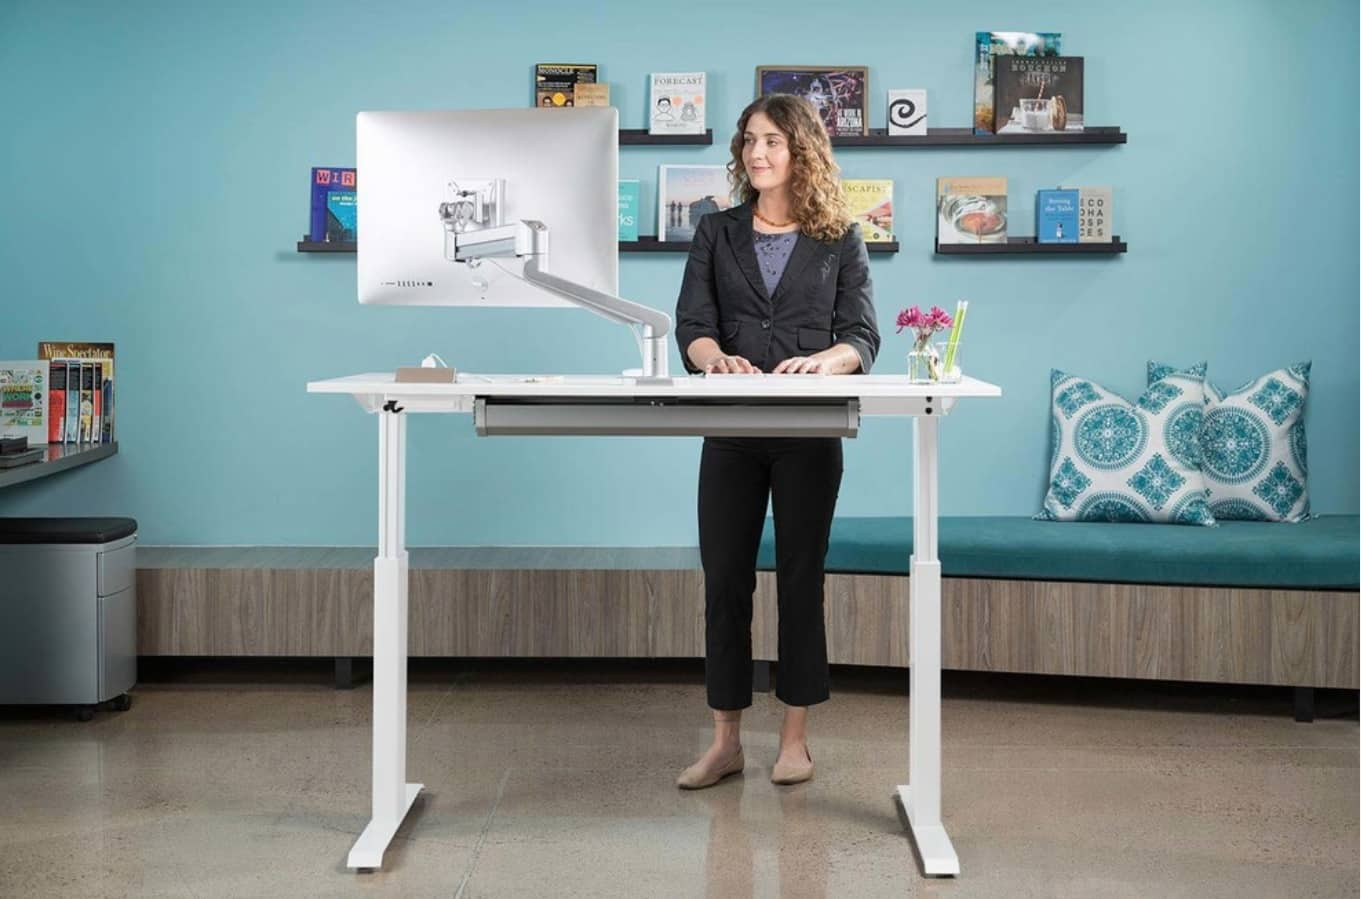 Adjustable Desk to Make Your Home Office more Universal. Great white model for combined work